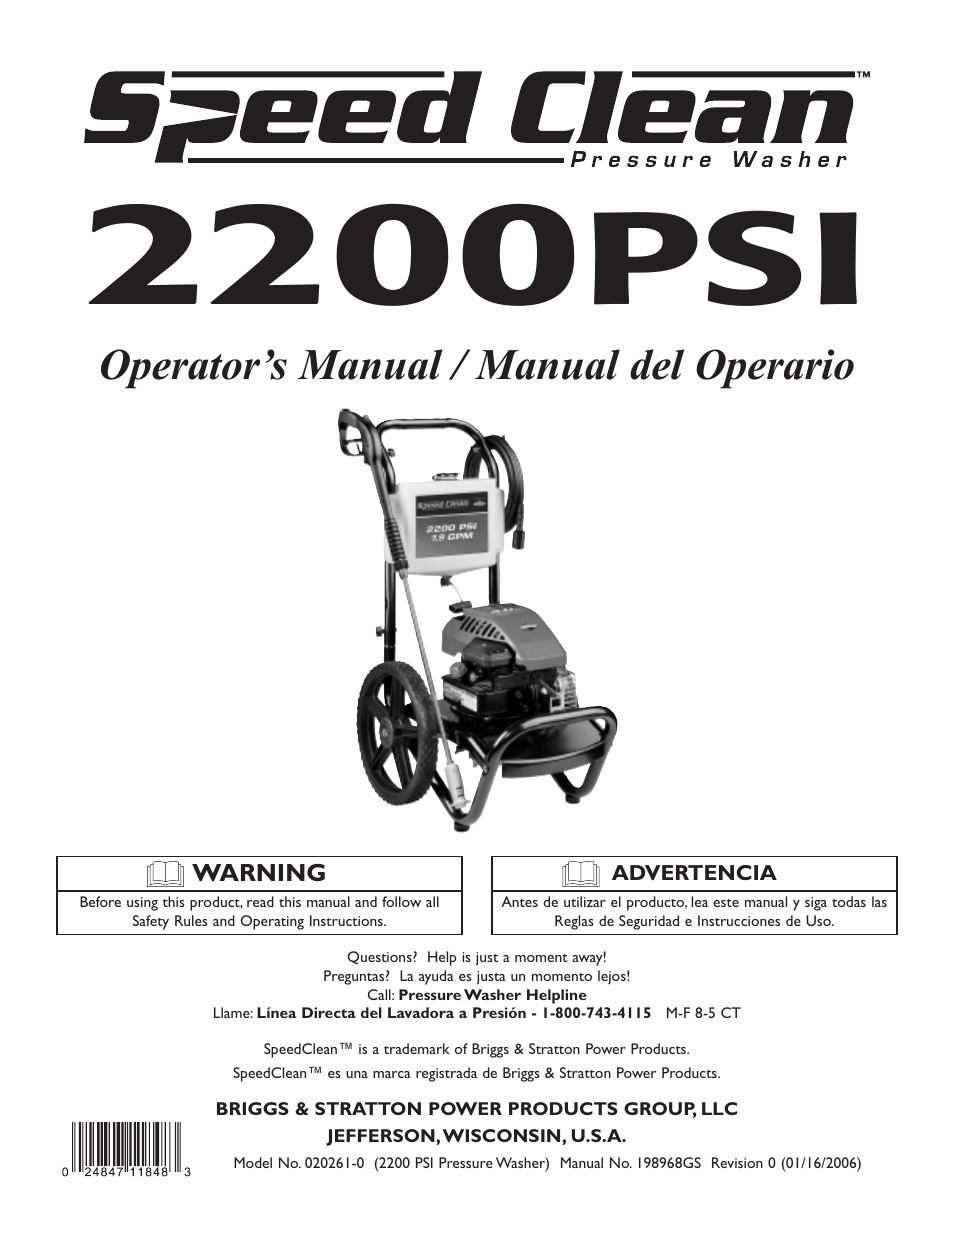 Briggs & Stratton 020261-0 User Manual | 36 pages